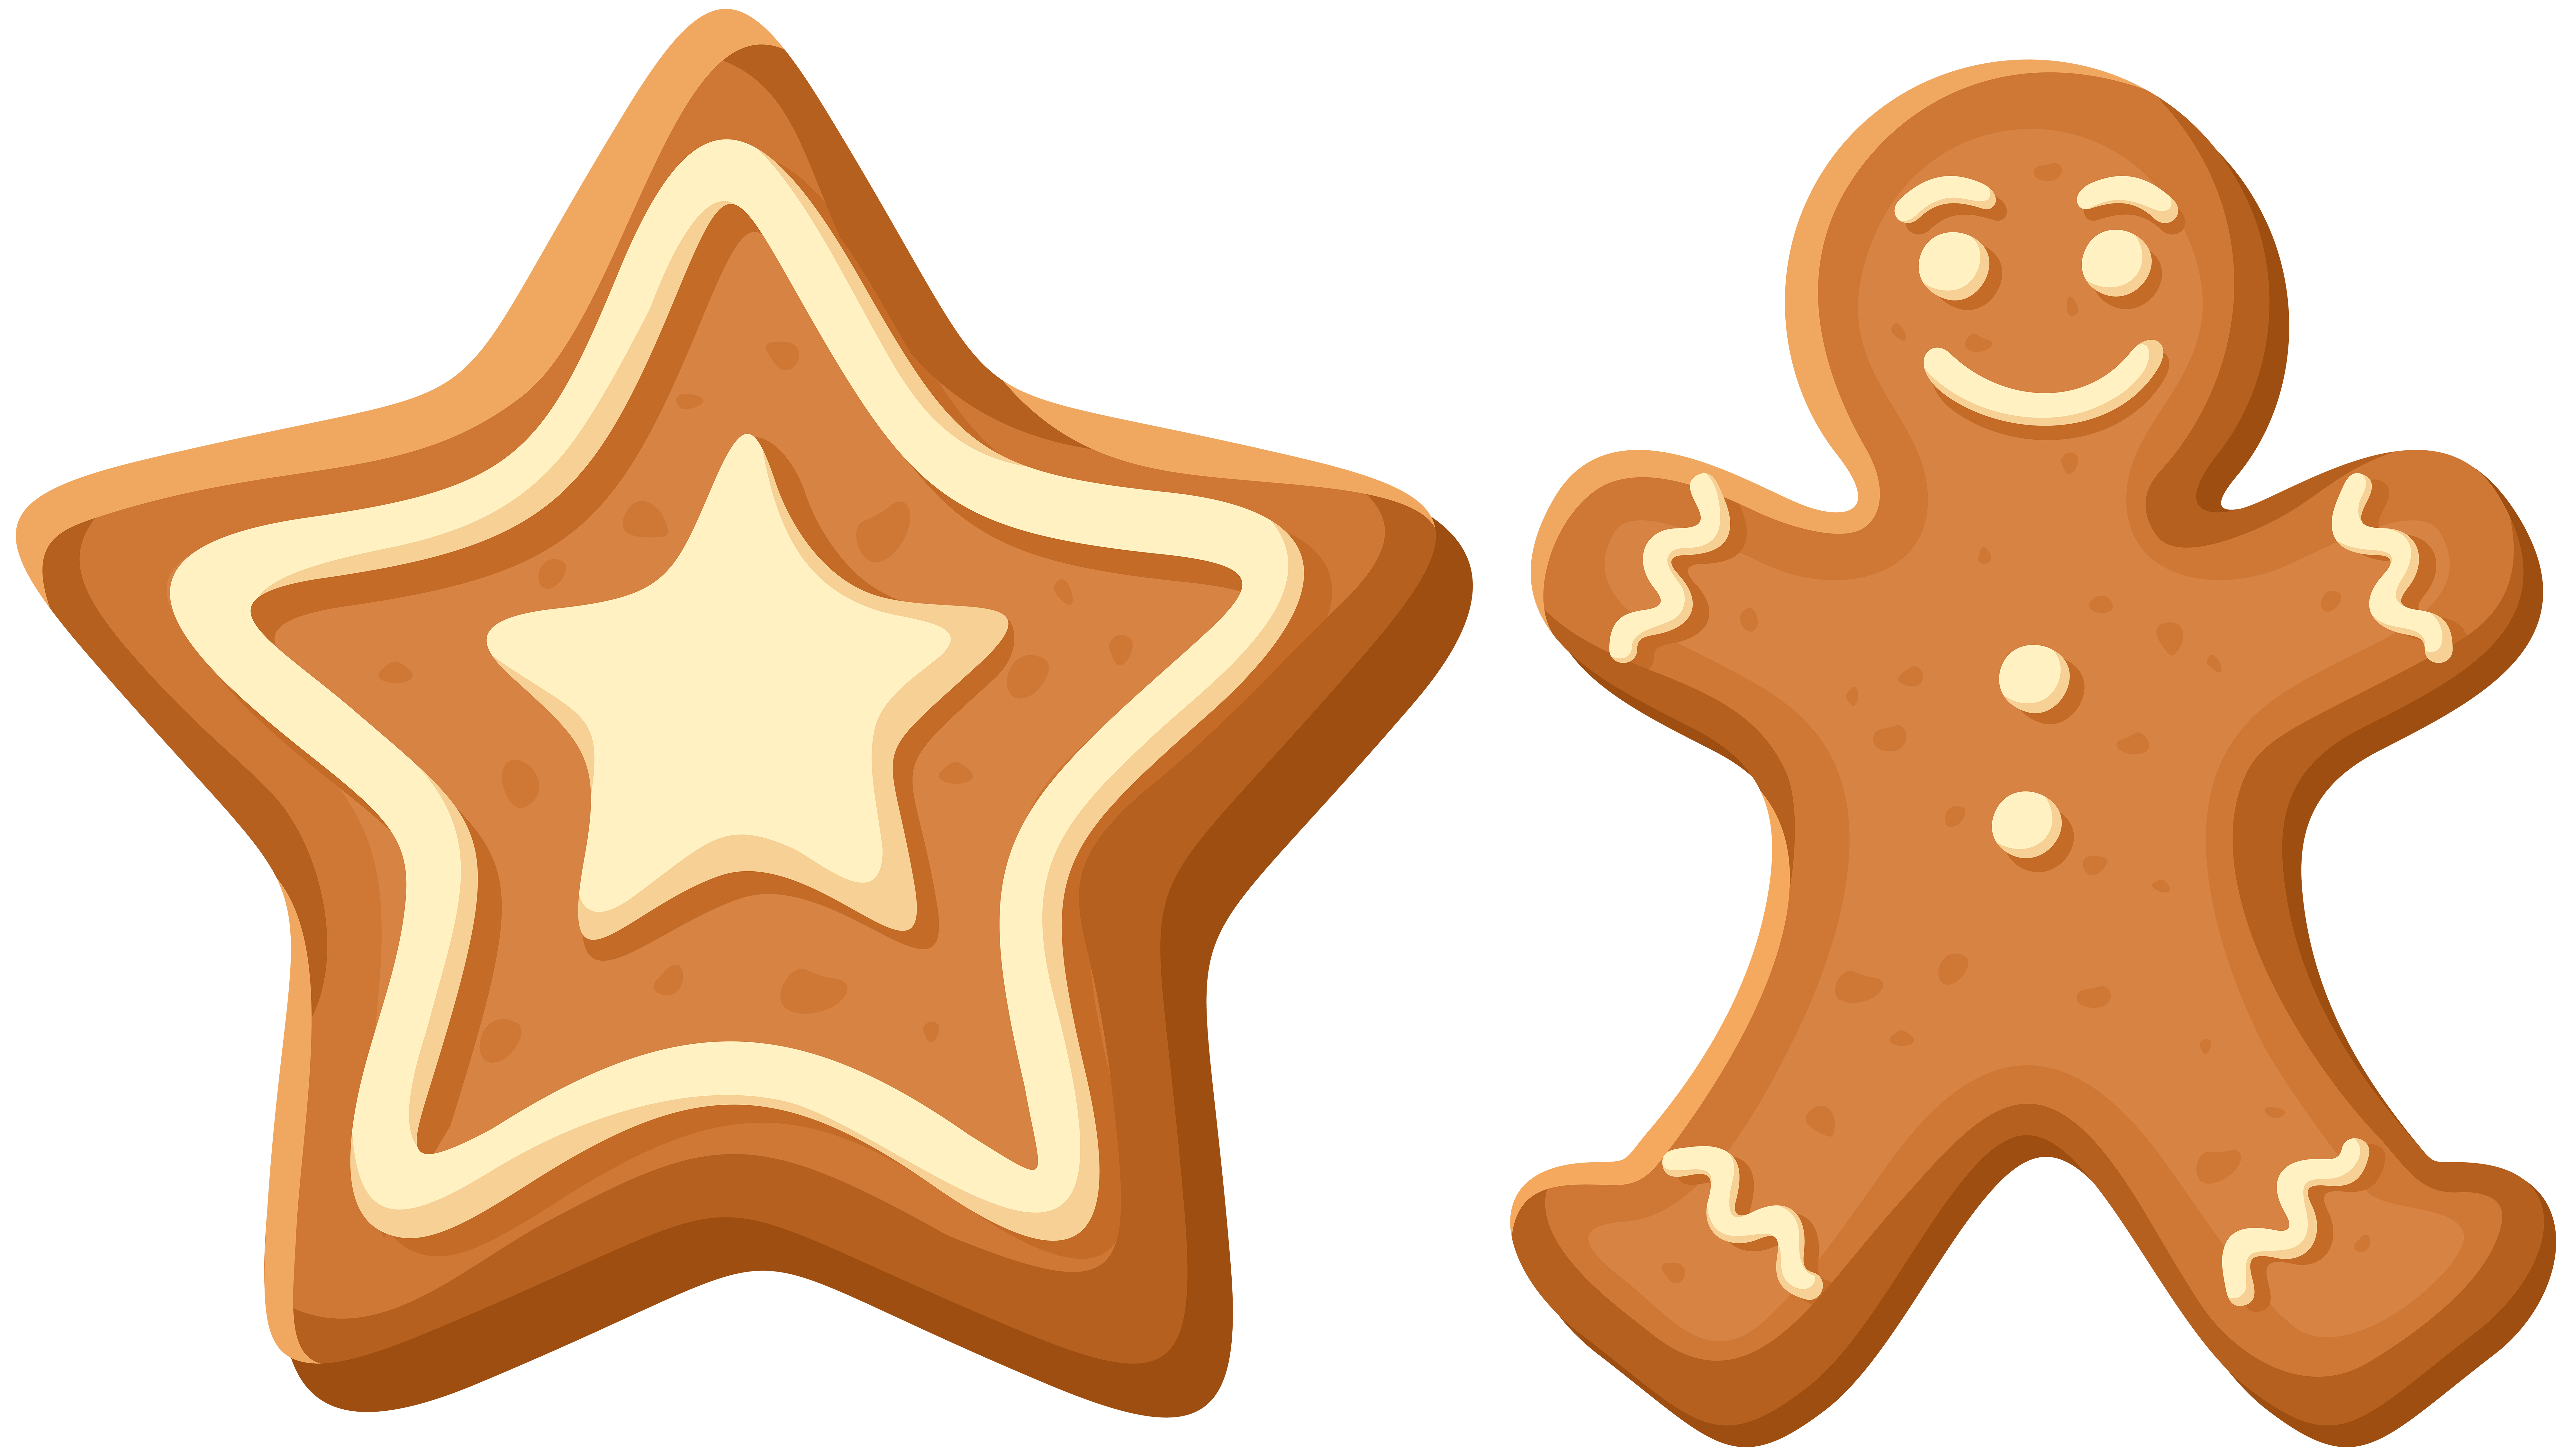 Gingerbread Family Clipart at GetDrawings.com.